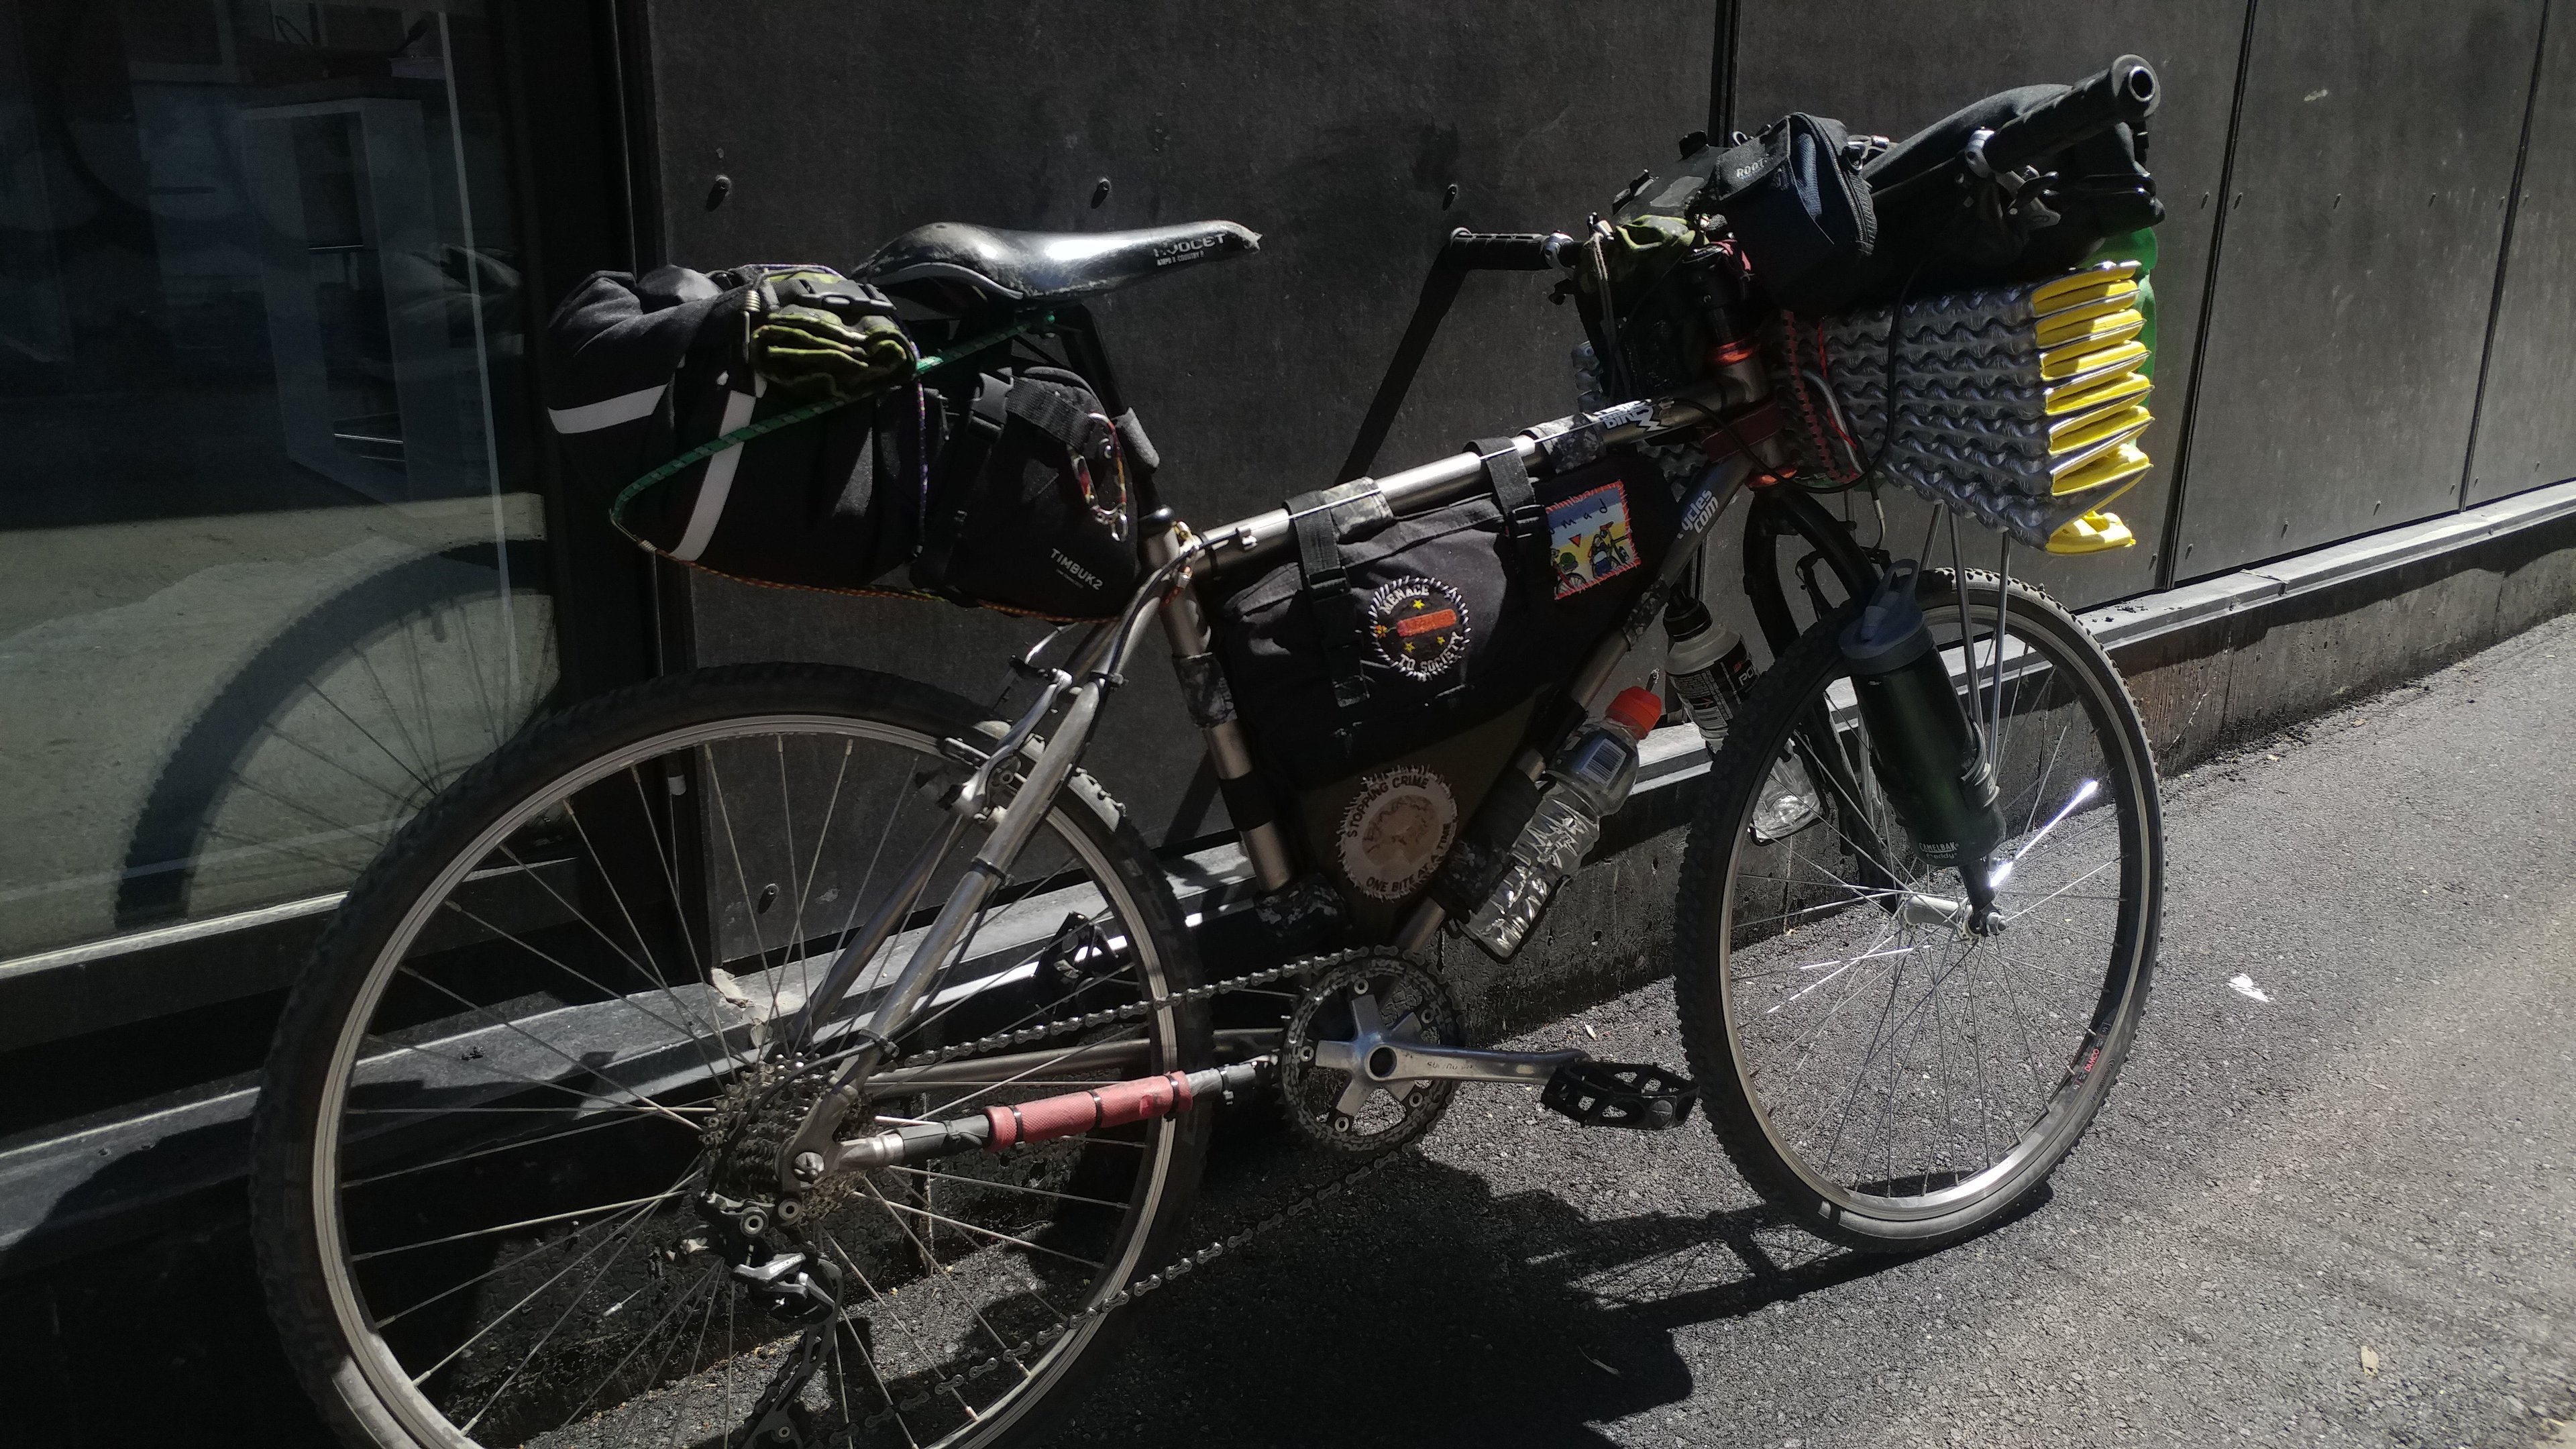 img_20180512_142604-jpg.43080_Picture of your loaded bicycle_Bike Touring_Squat the Planet_12:59 PM